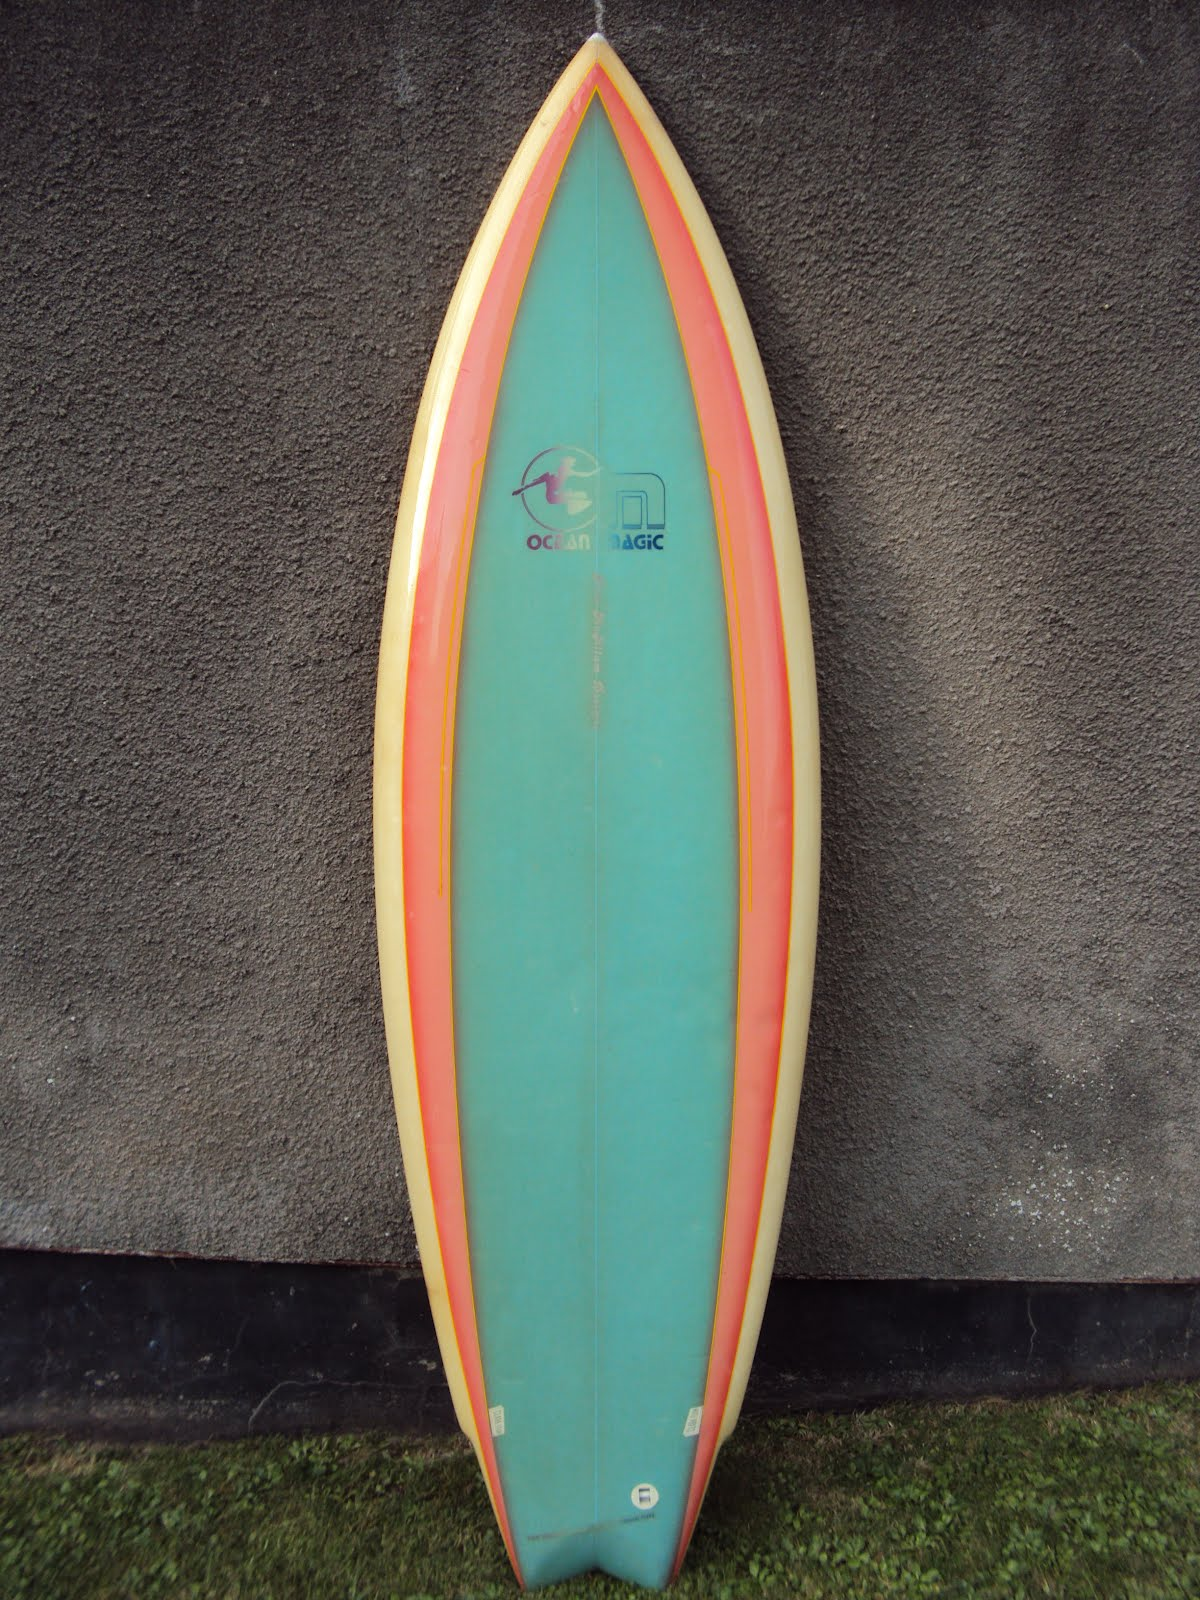 Galleries related cool surfboard design ideas simple for Awesome surfboard designs